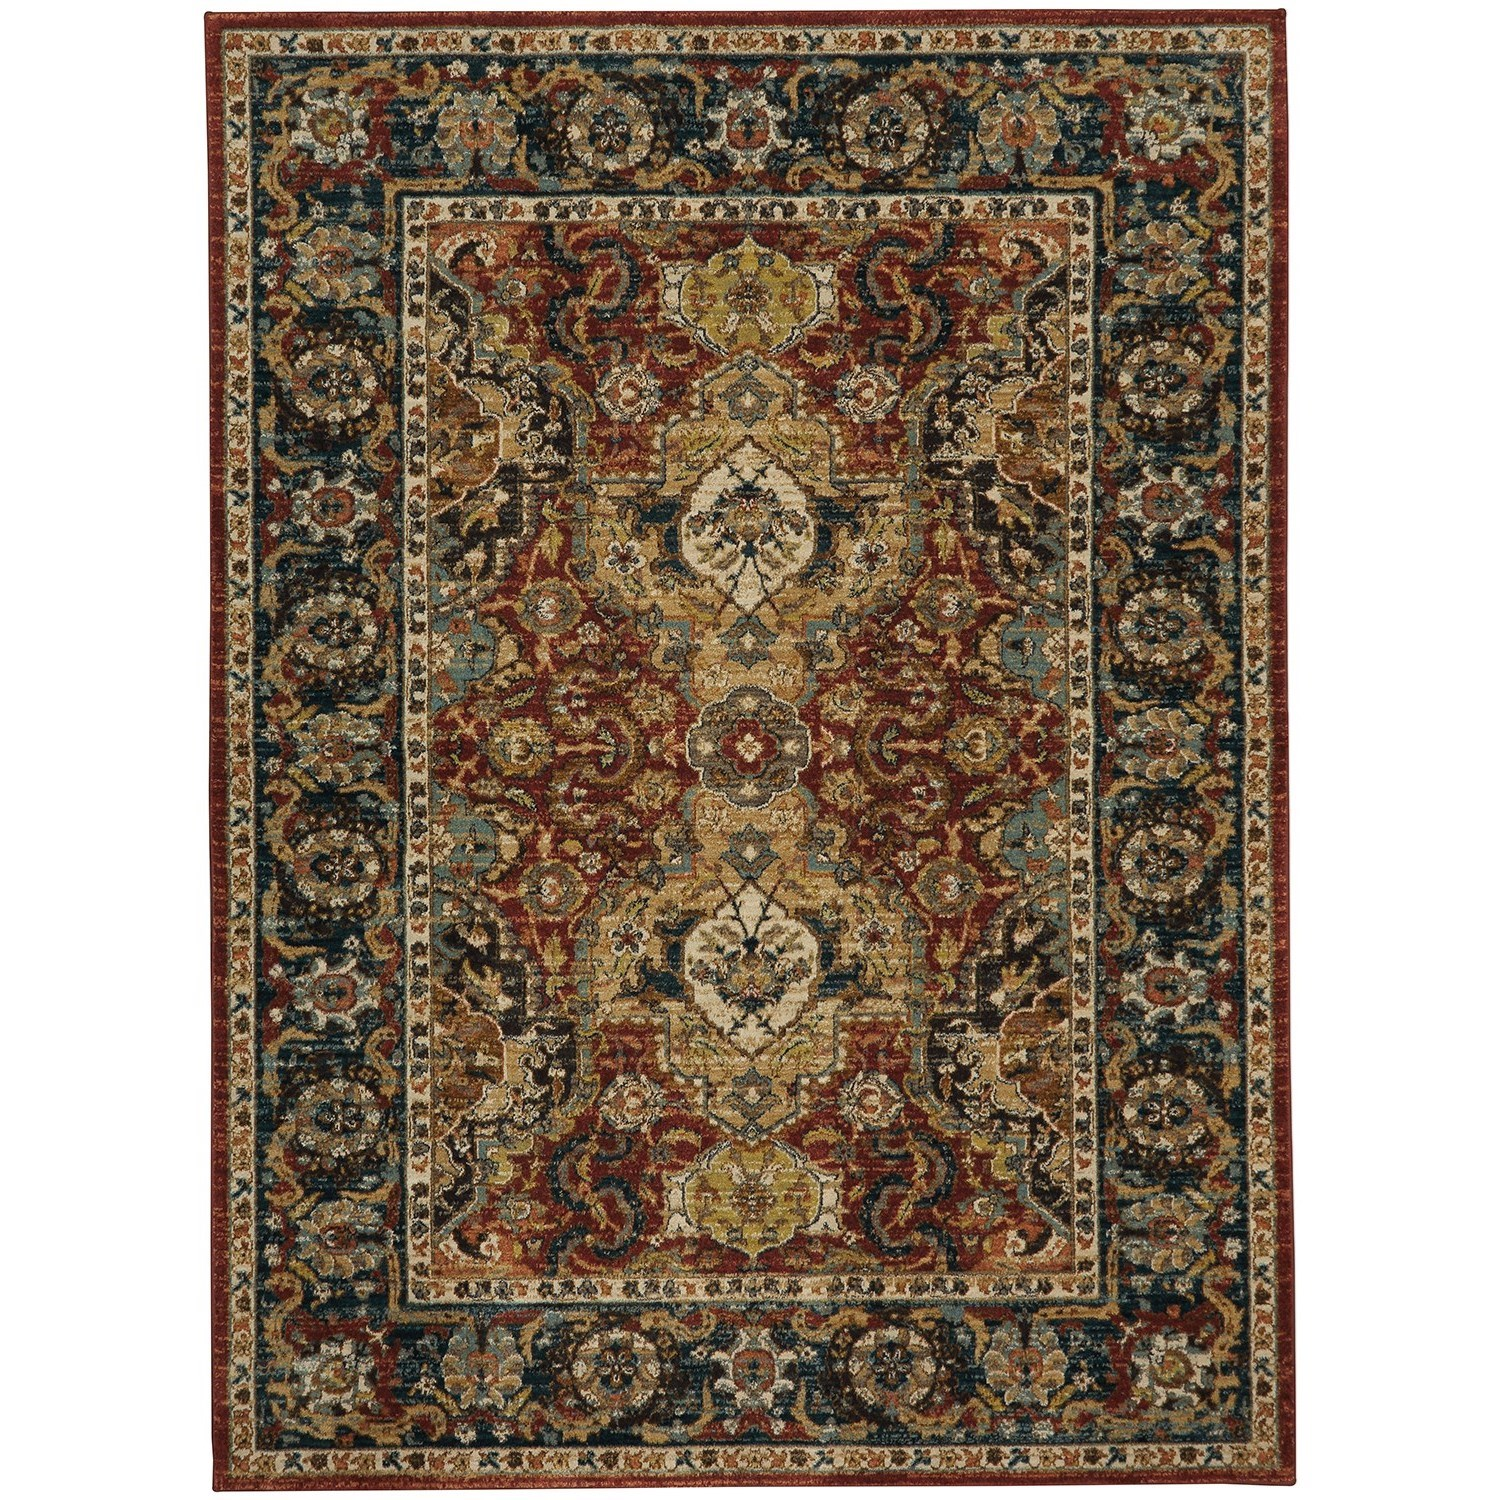 "Spice Market 3' 5""x5' 5"" Rectangle Ornamental Area Rug by Karastan Rugs at Darvin Furniture"